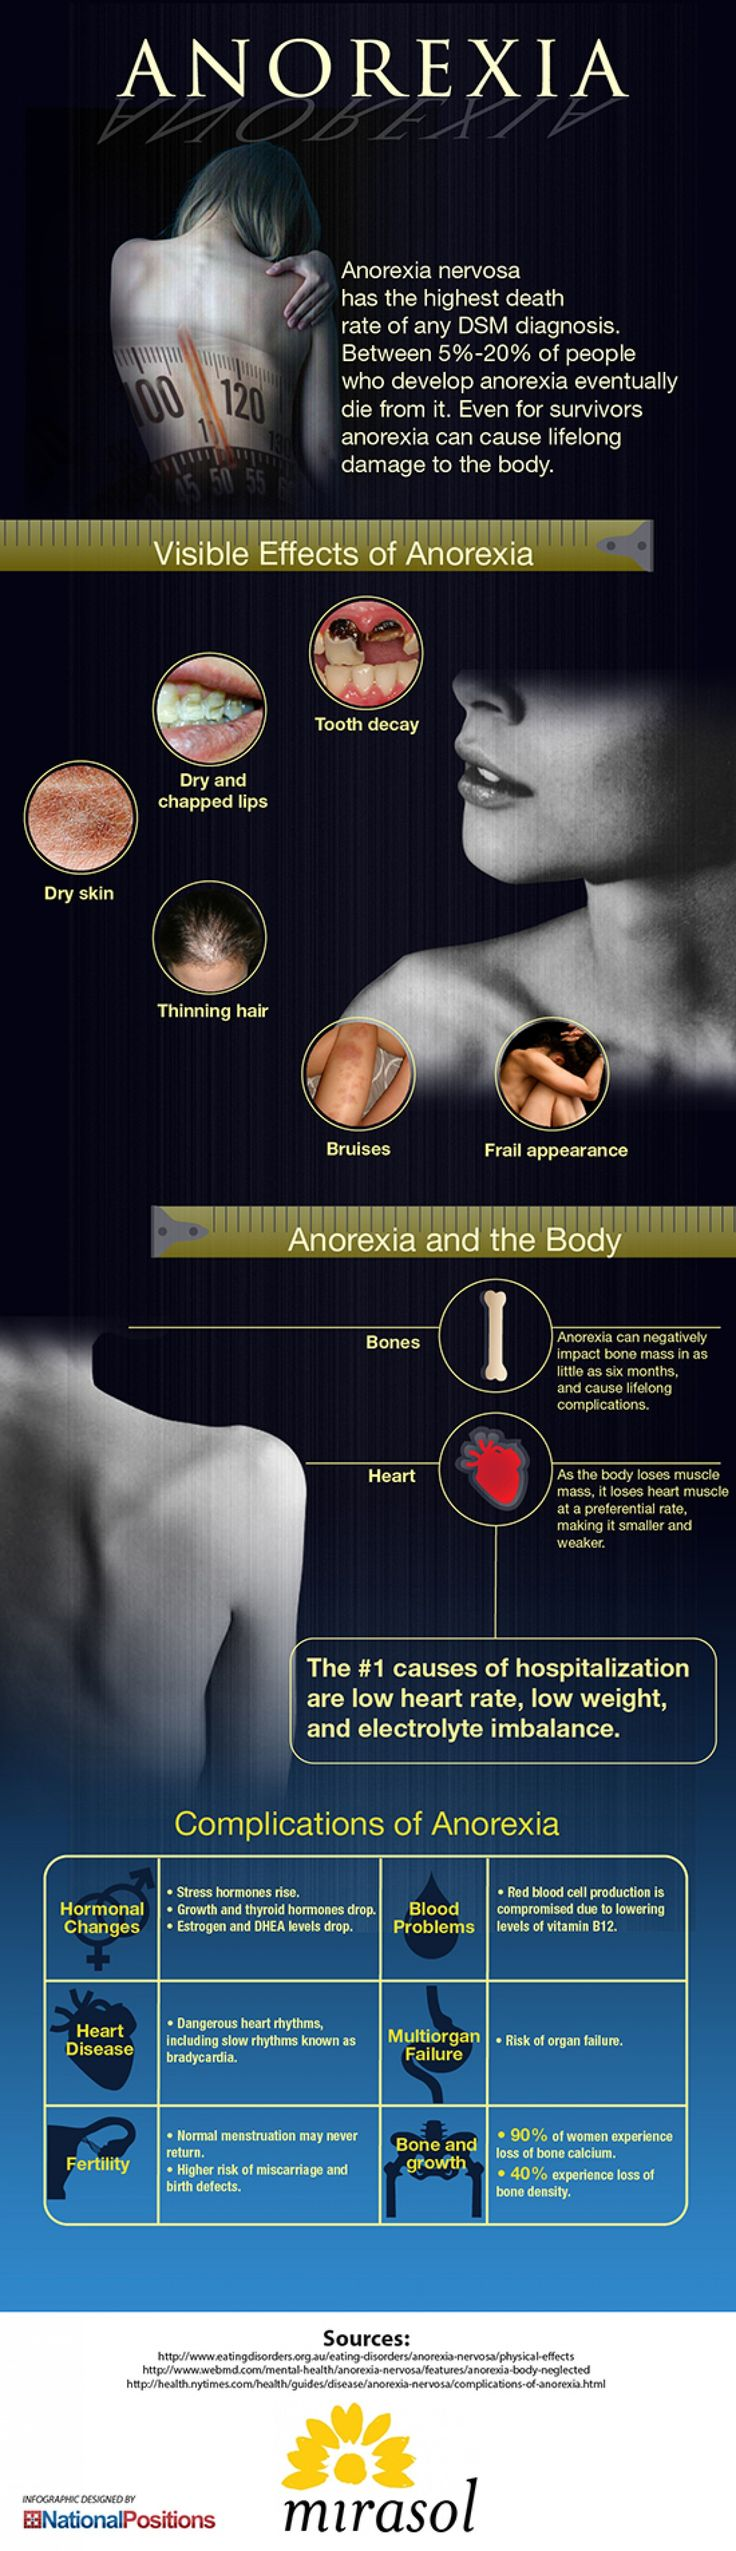 Anorexias' Effects to The Body Infographic